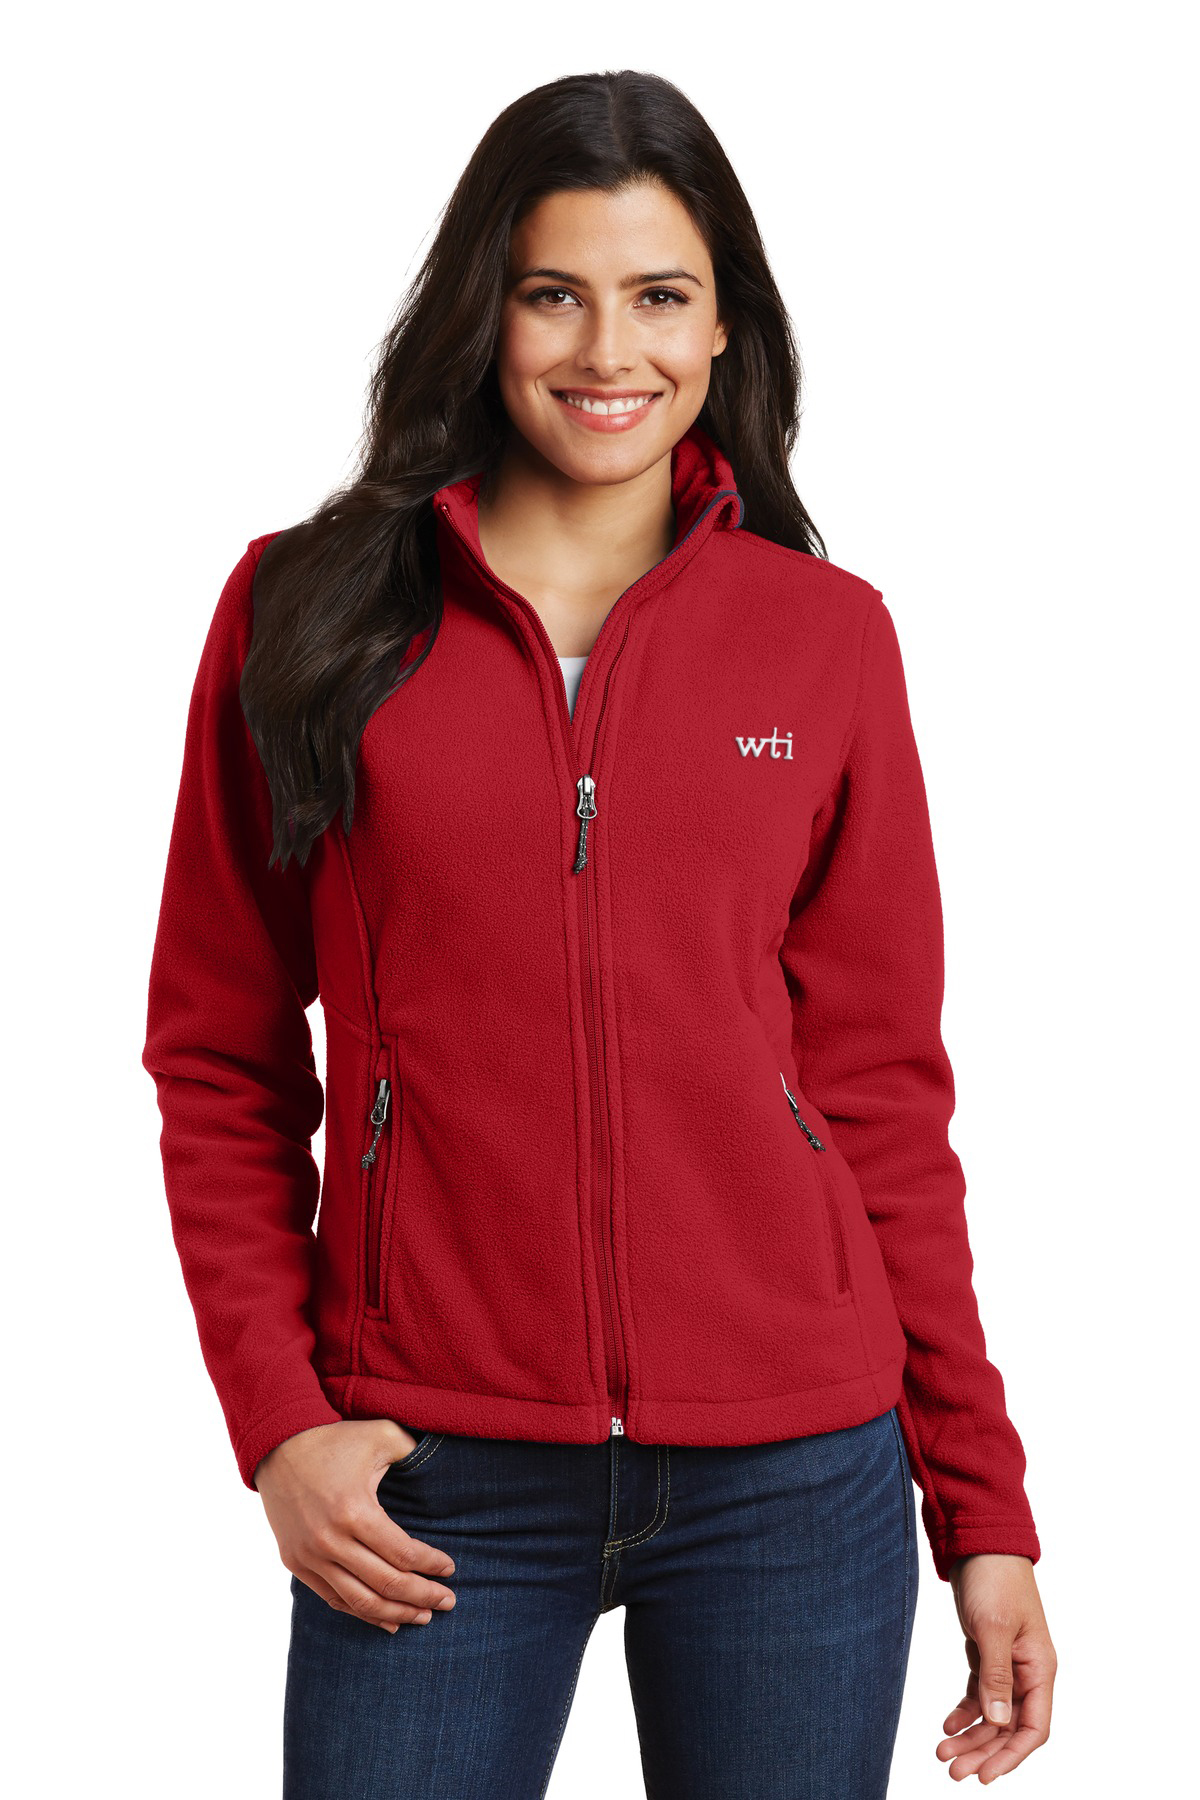 PA Ladies Value Fleece Jacket. L217. Prices Starting At $28!